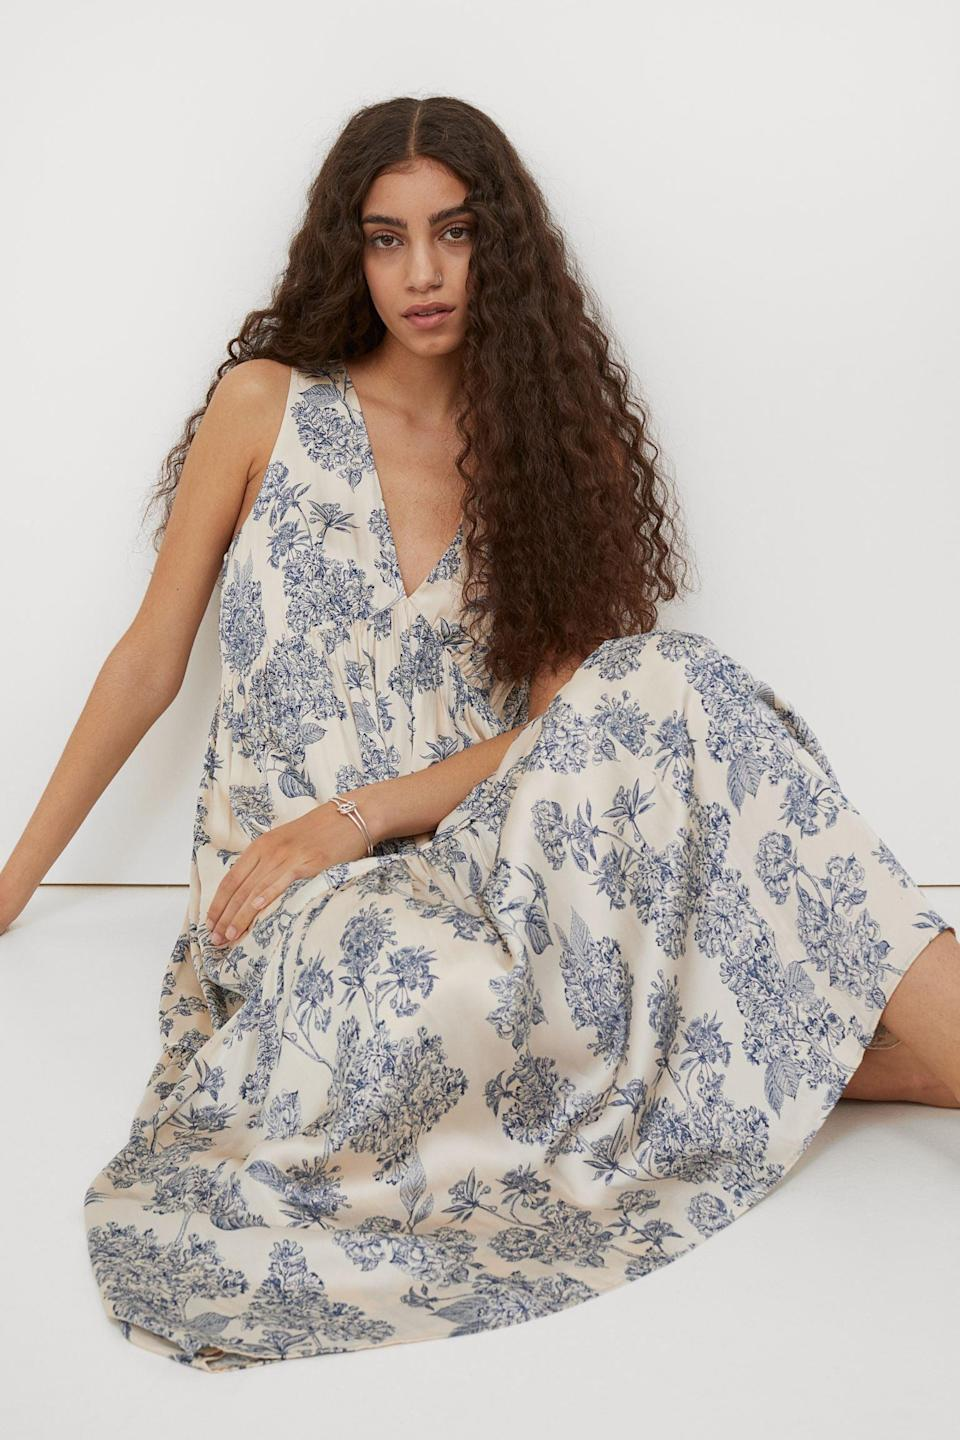 <p>This eye-catching <span>Long V-neck Dress</span> ($50) will pique everyone's curiosity when you wear it to the next brunch. The floral motifs give it a romantic and modern feel.</p>